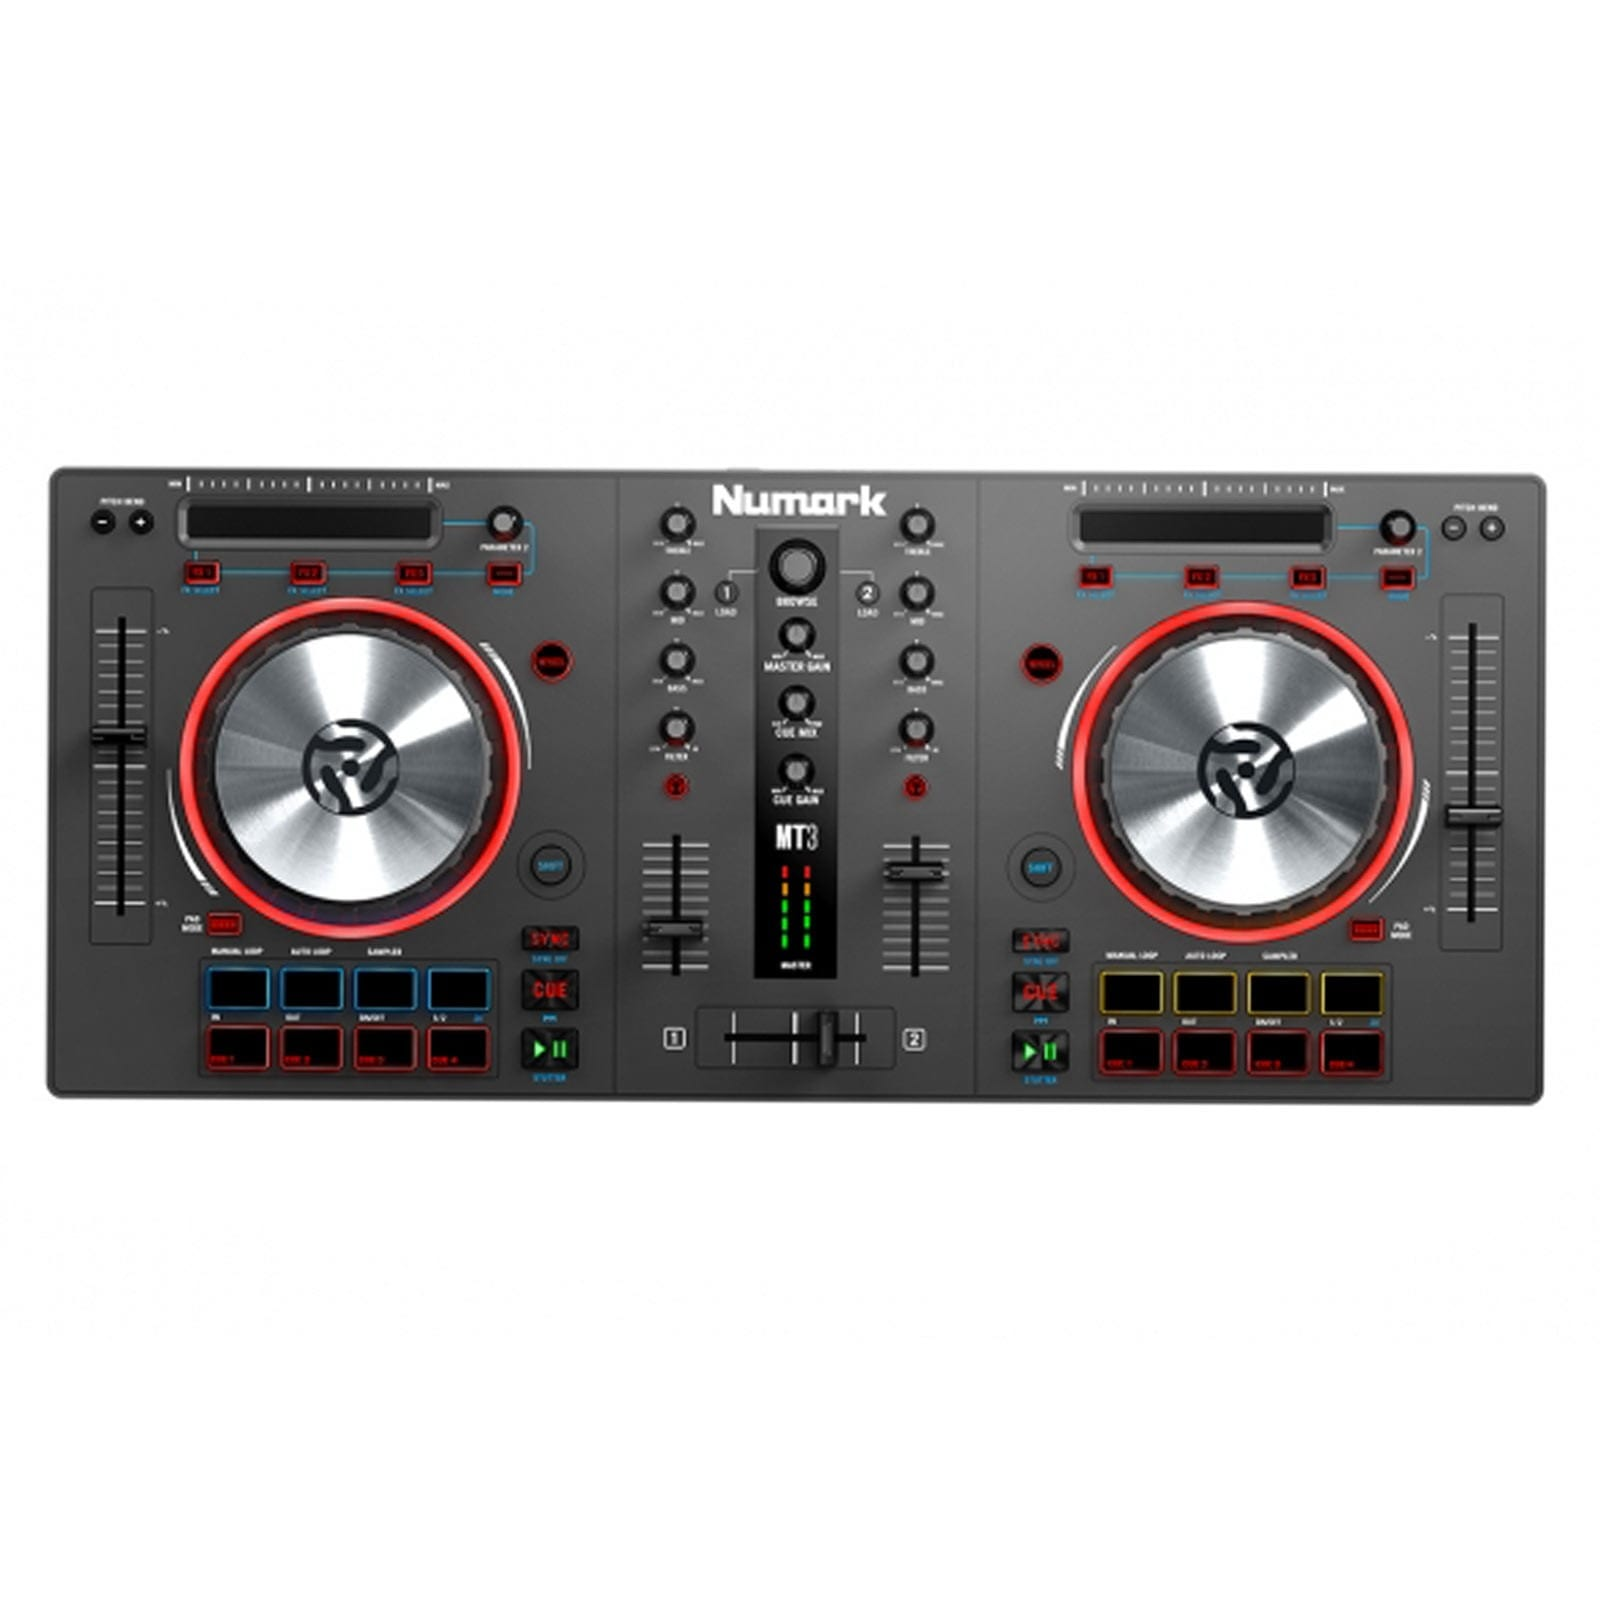 numark-mixtrack-iii-all-in-one-controller-solution-for-virtual-dj-b67